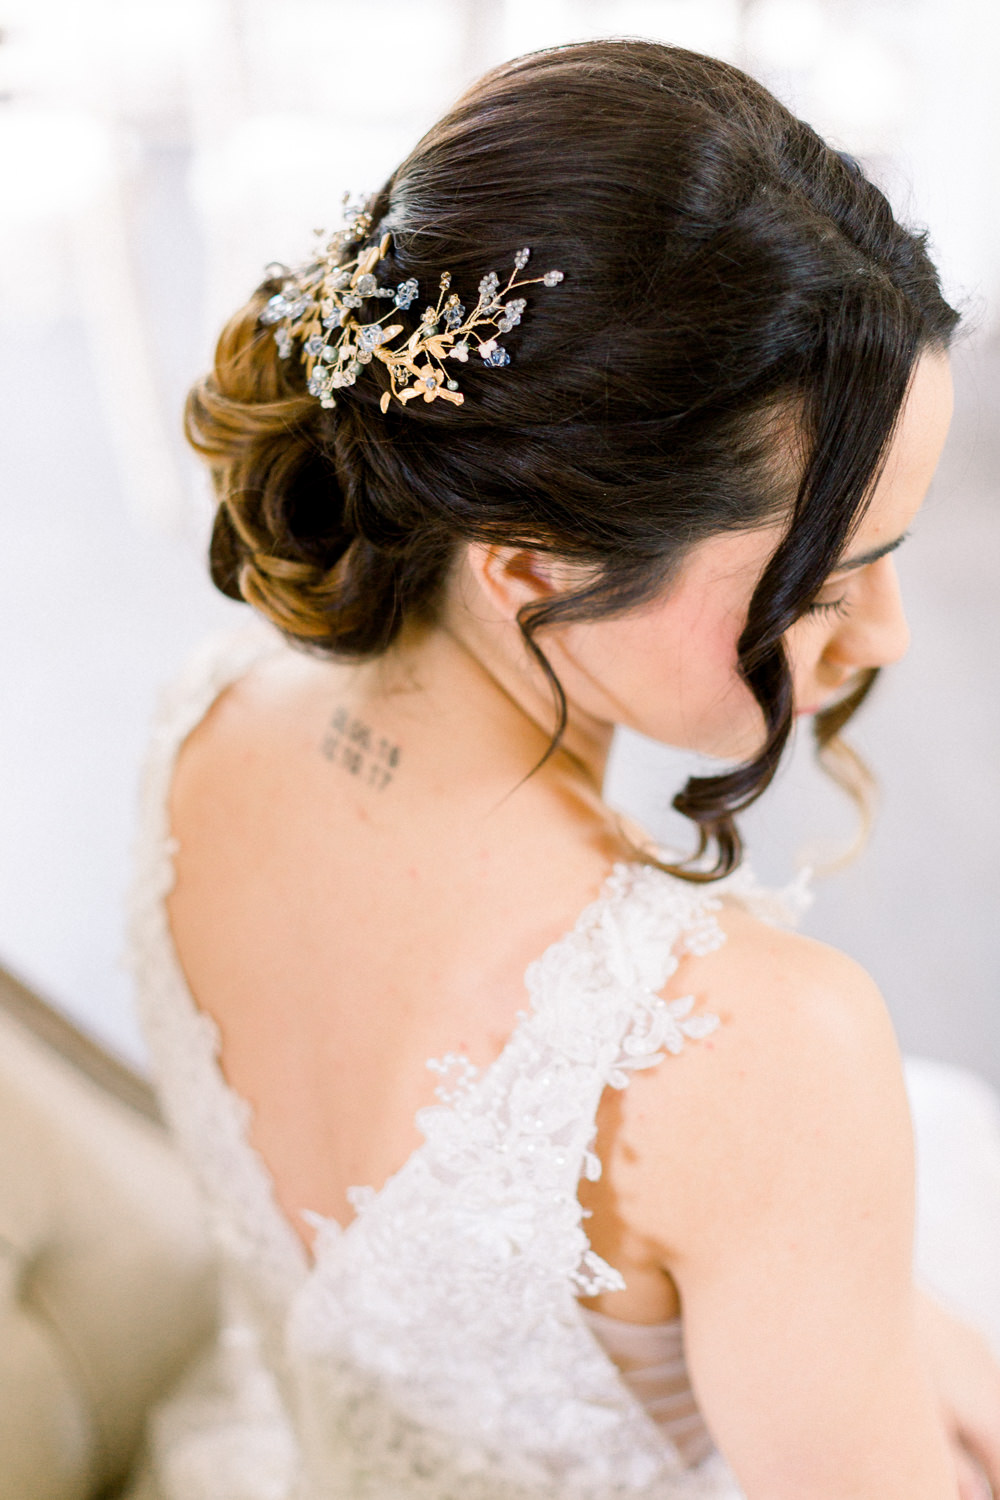 Bride Bridal Accessory Hair Up Do Style Winter Blue Barn Wedding Ideas Joanna Briggs Photography